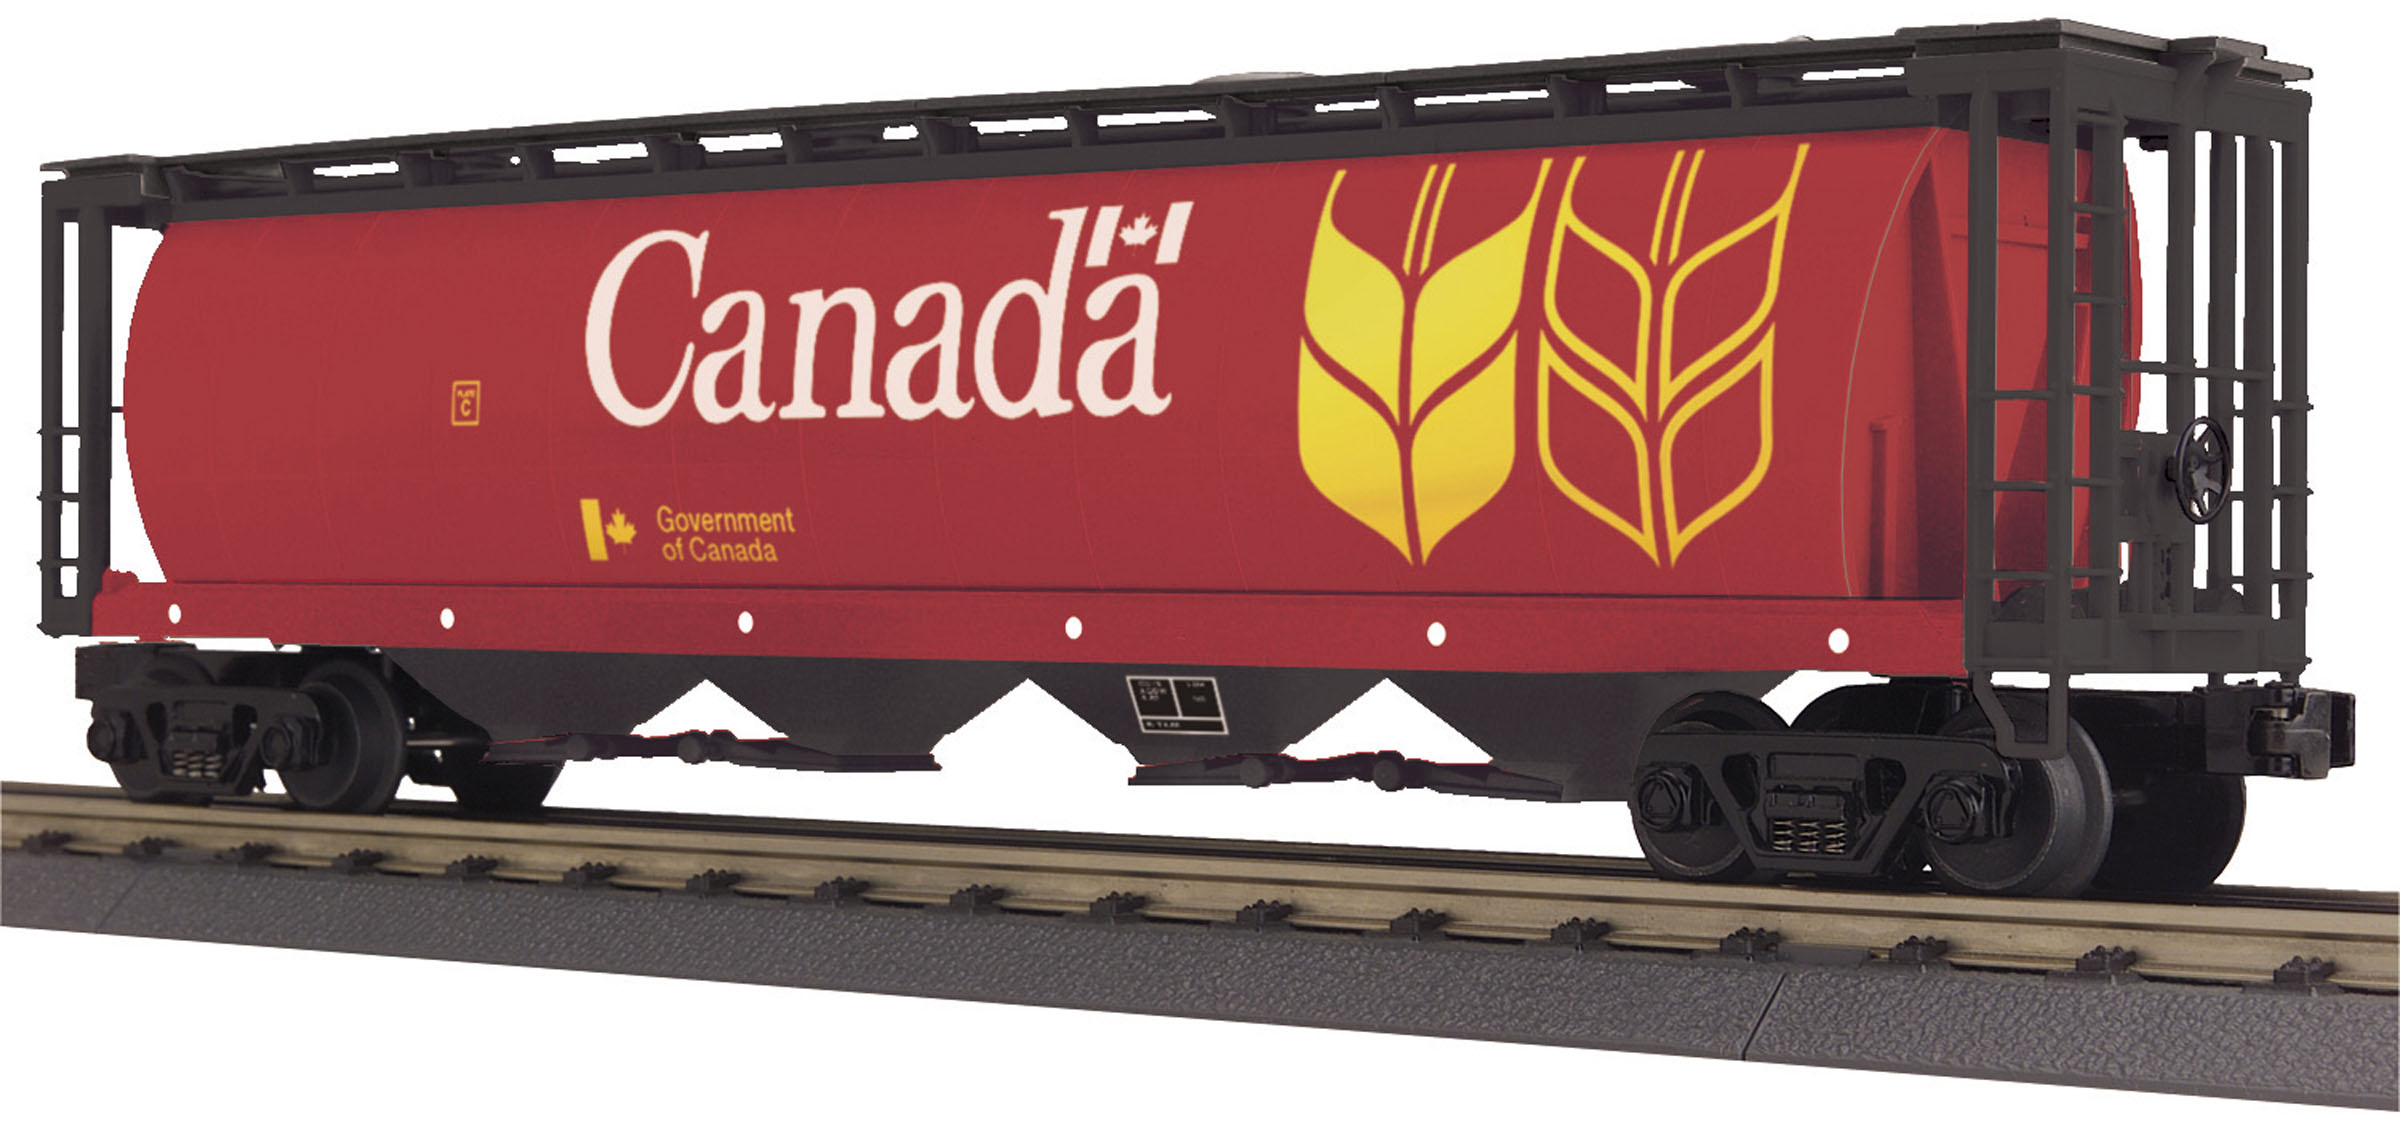 Canada 4-Bay Cylindrical Hopper Car image